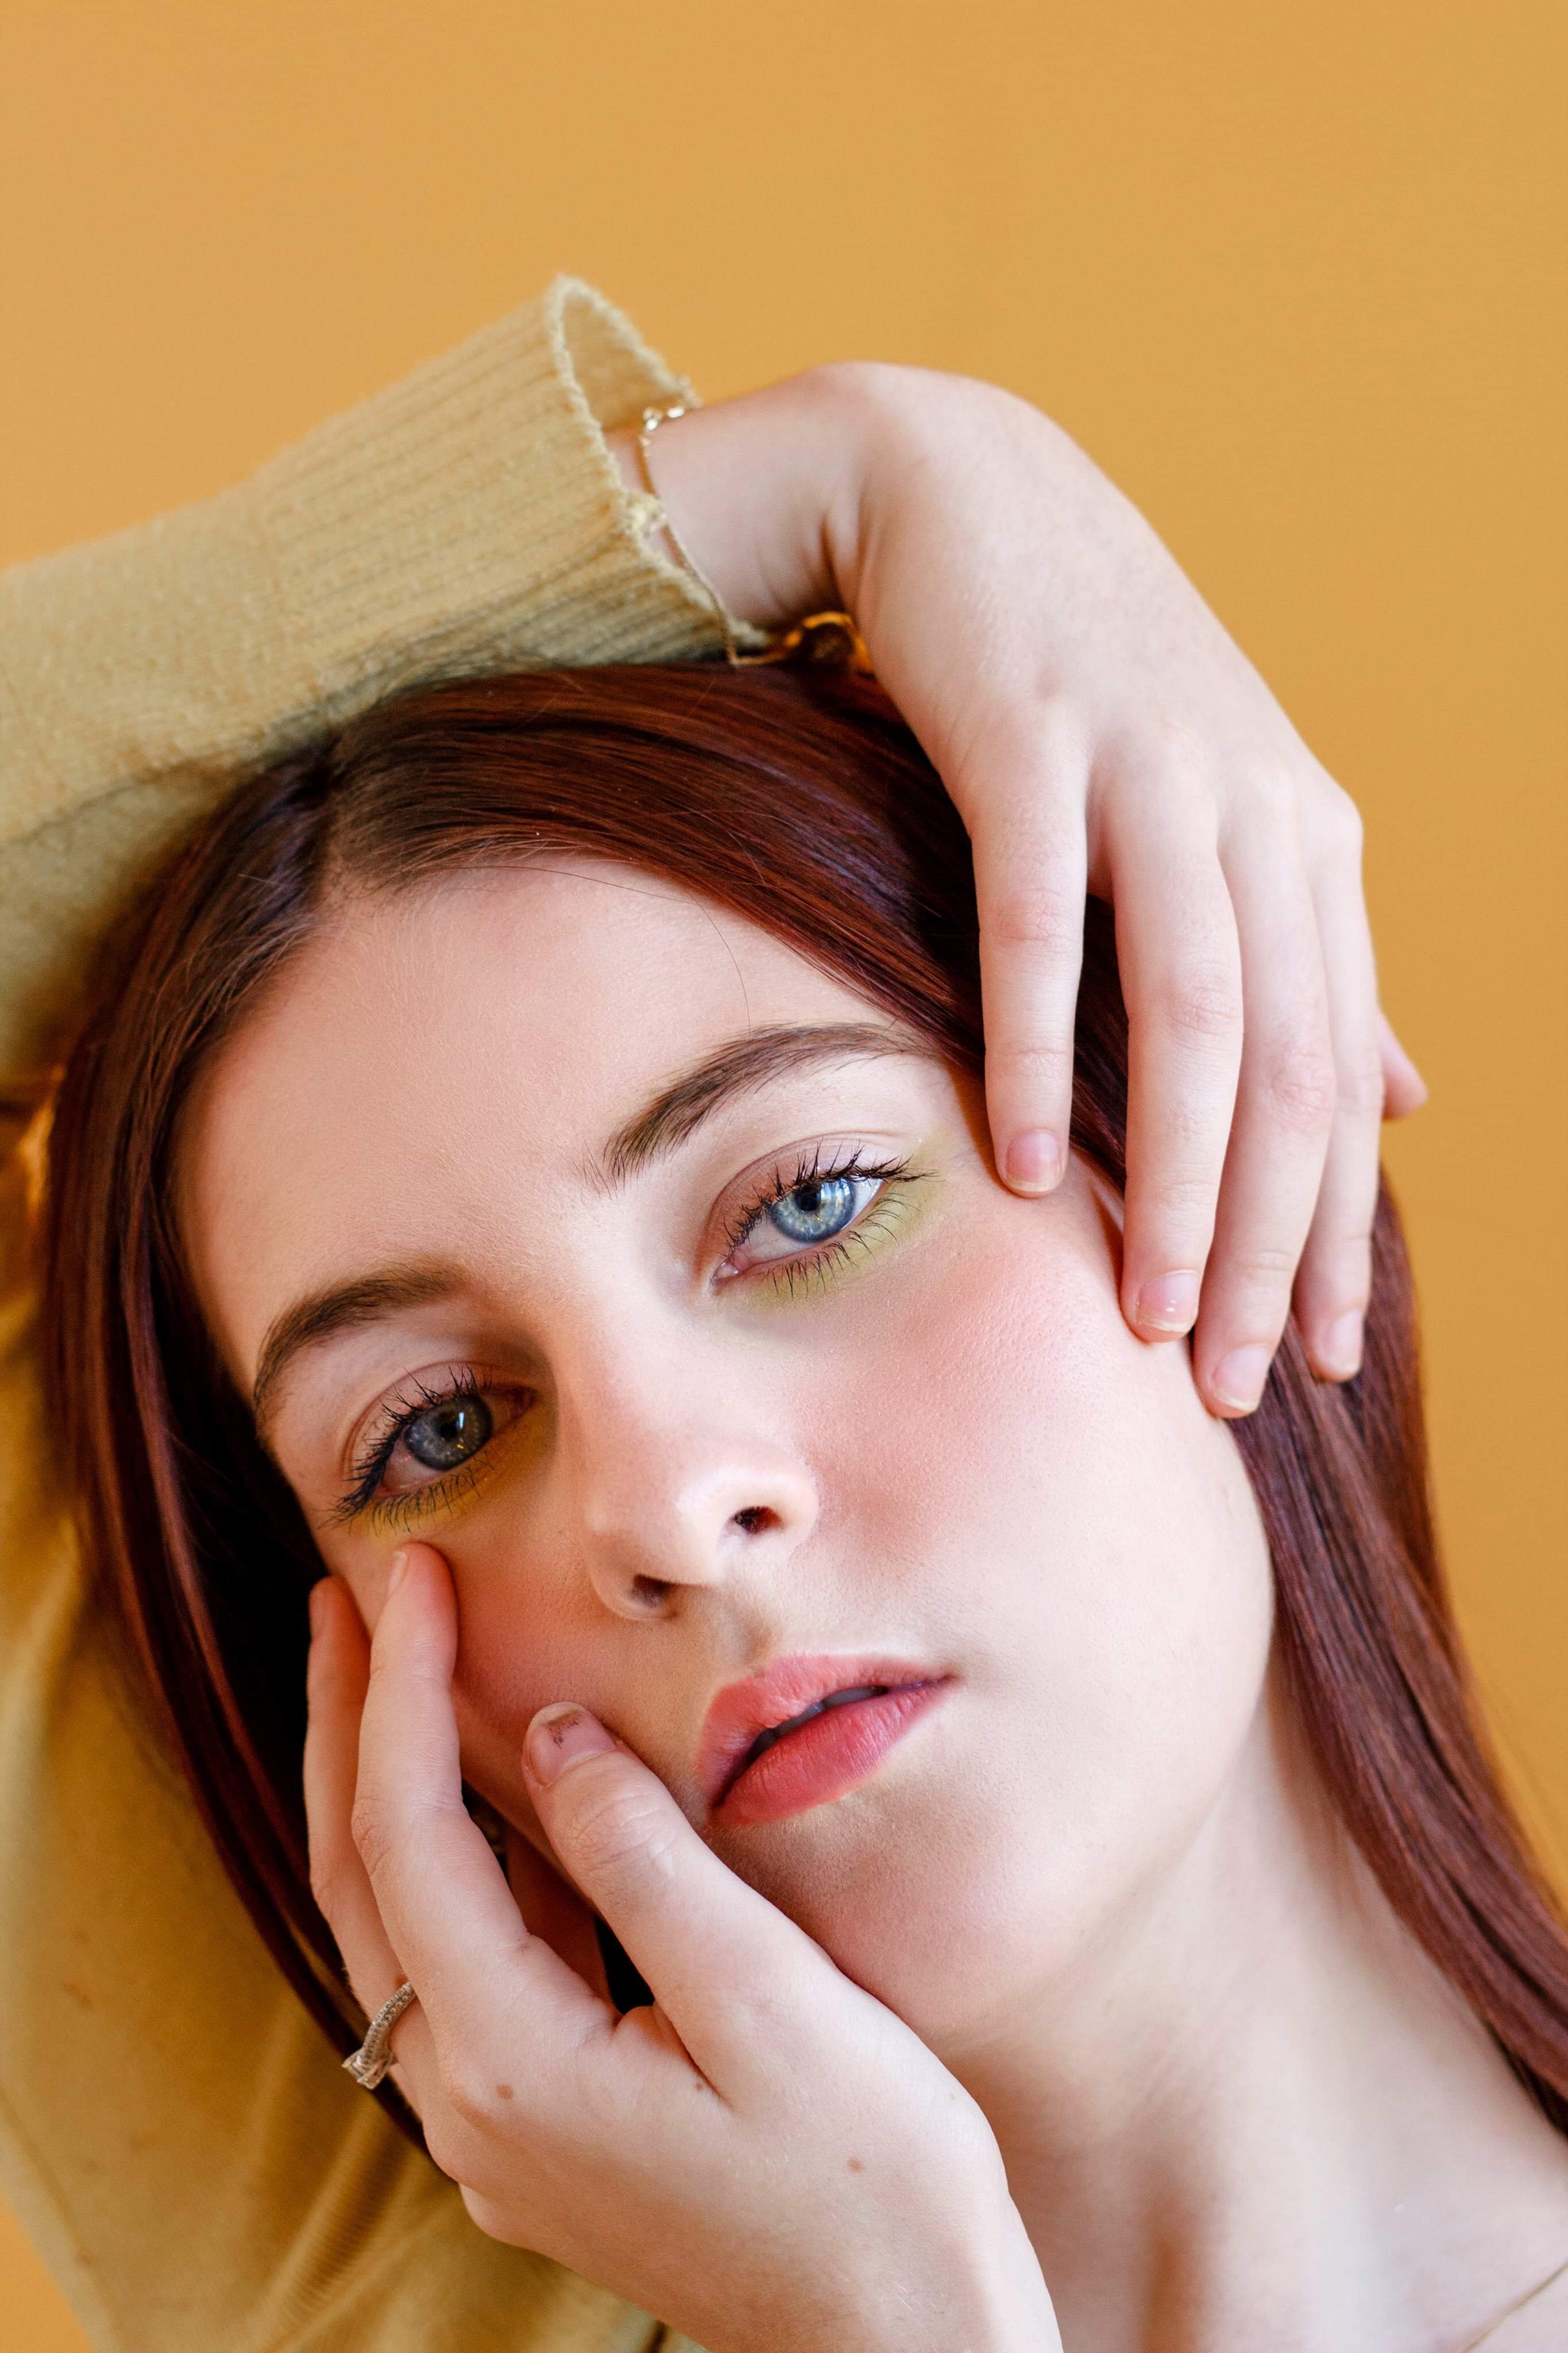 Close-up Photo of Woman Posing With Hands on Her Head In Front of Yellow Background